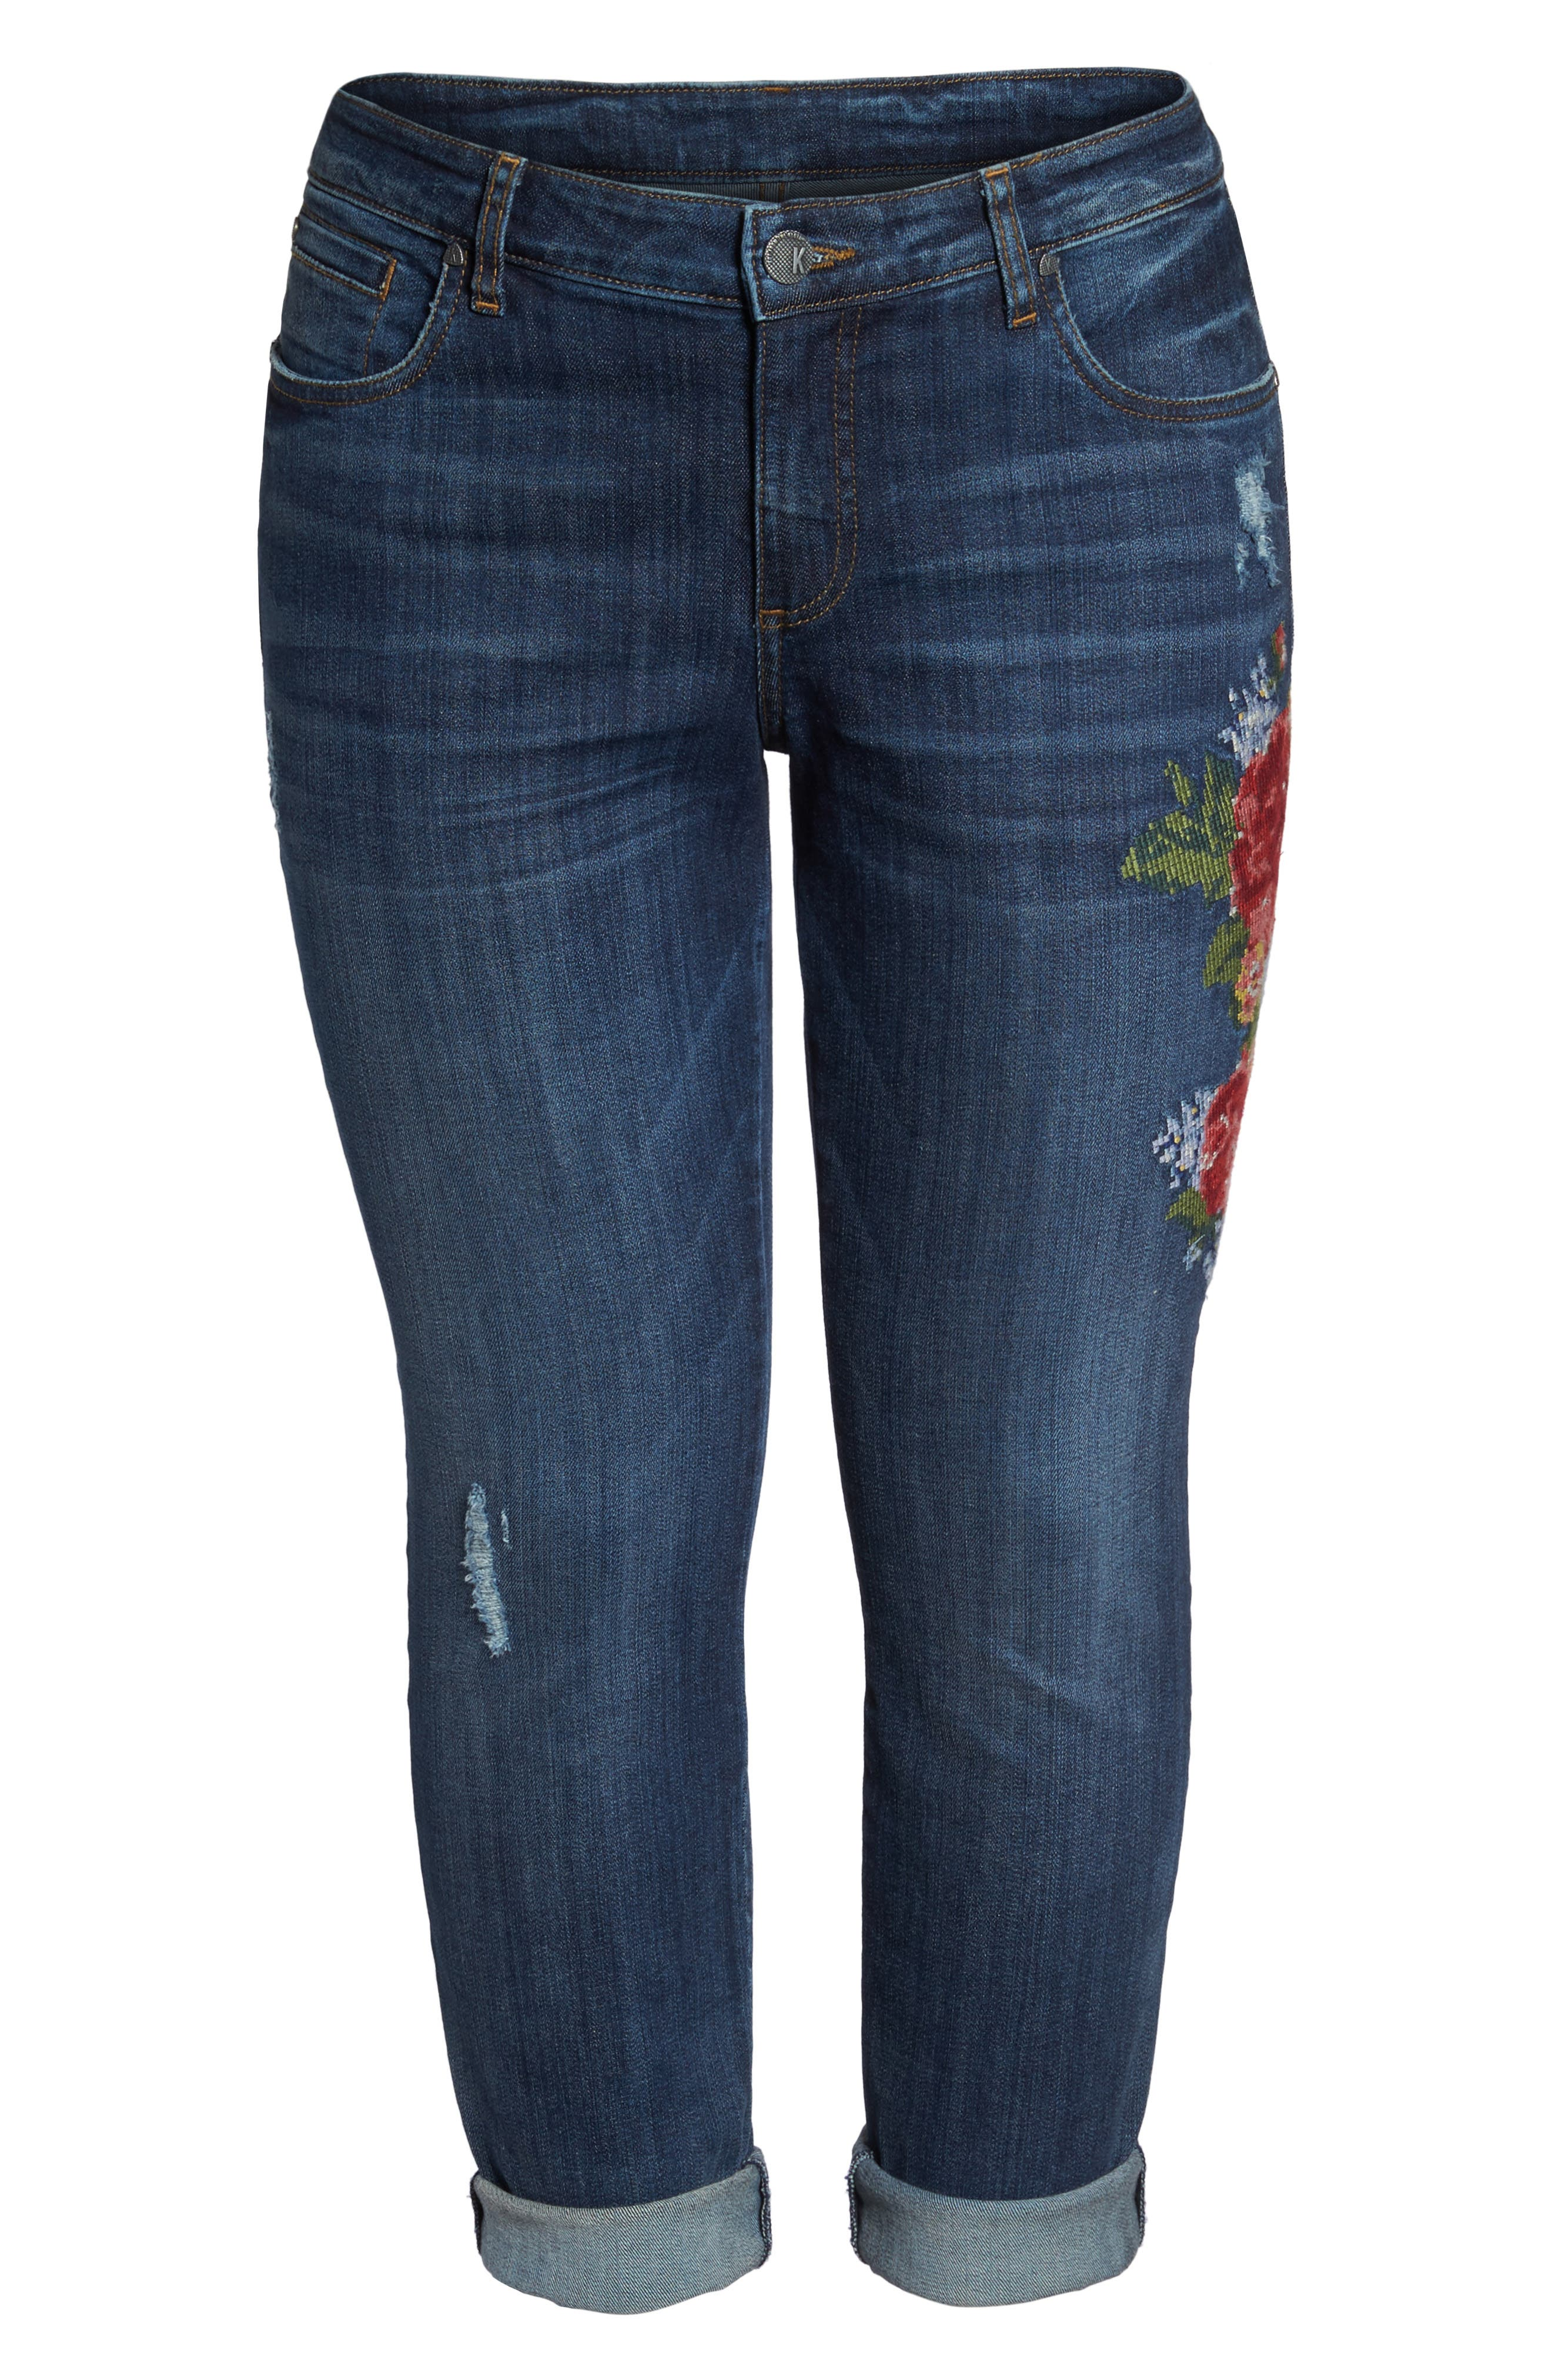 Catherine Embroidered Boyfriend Jeans,                             Alternate thumbnail 7, color,                             400